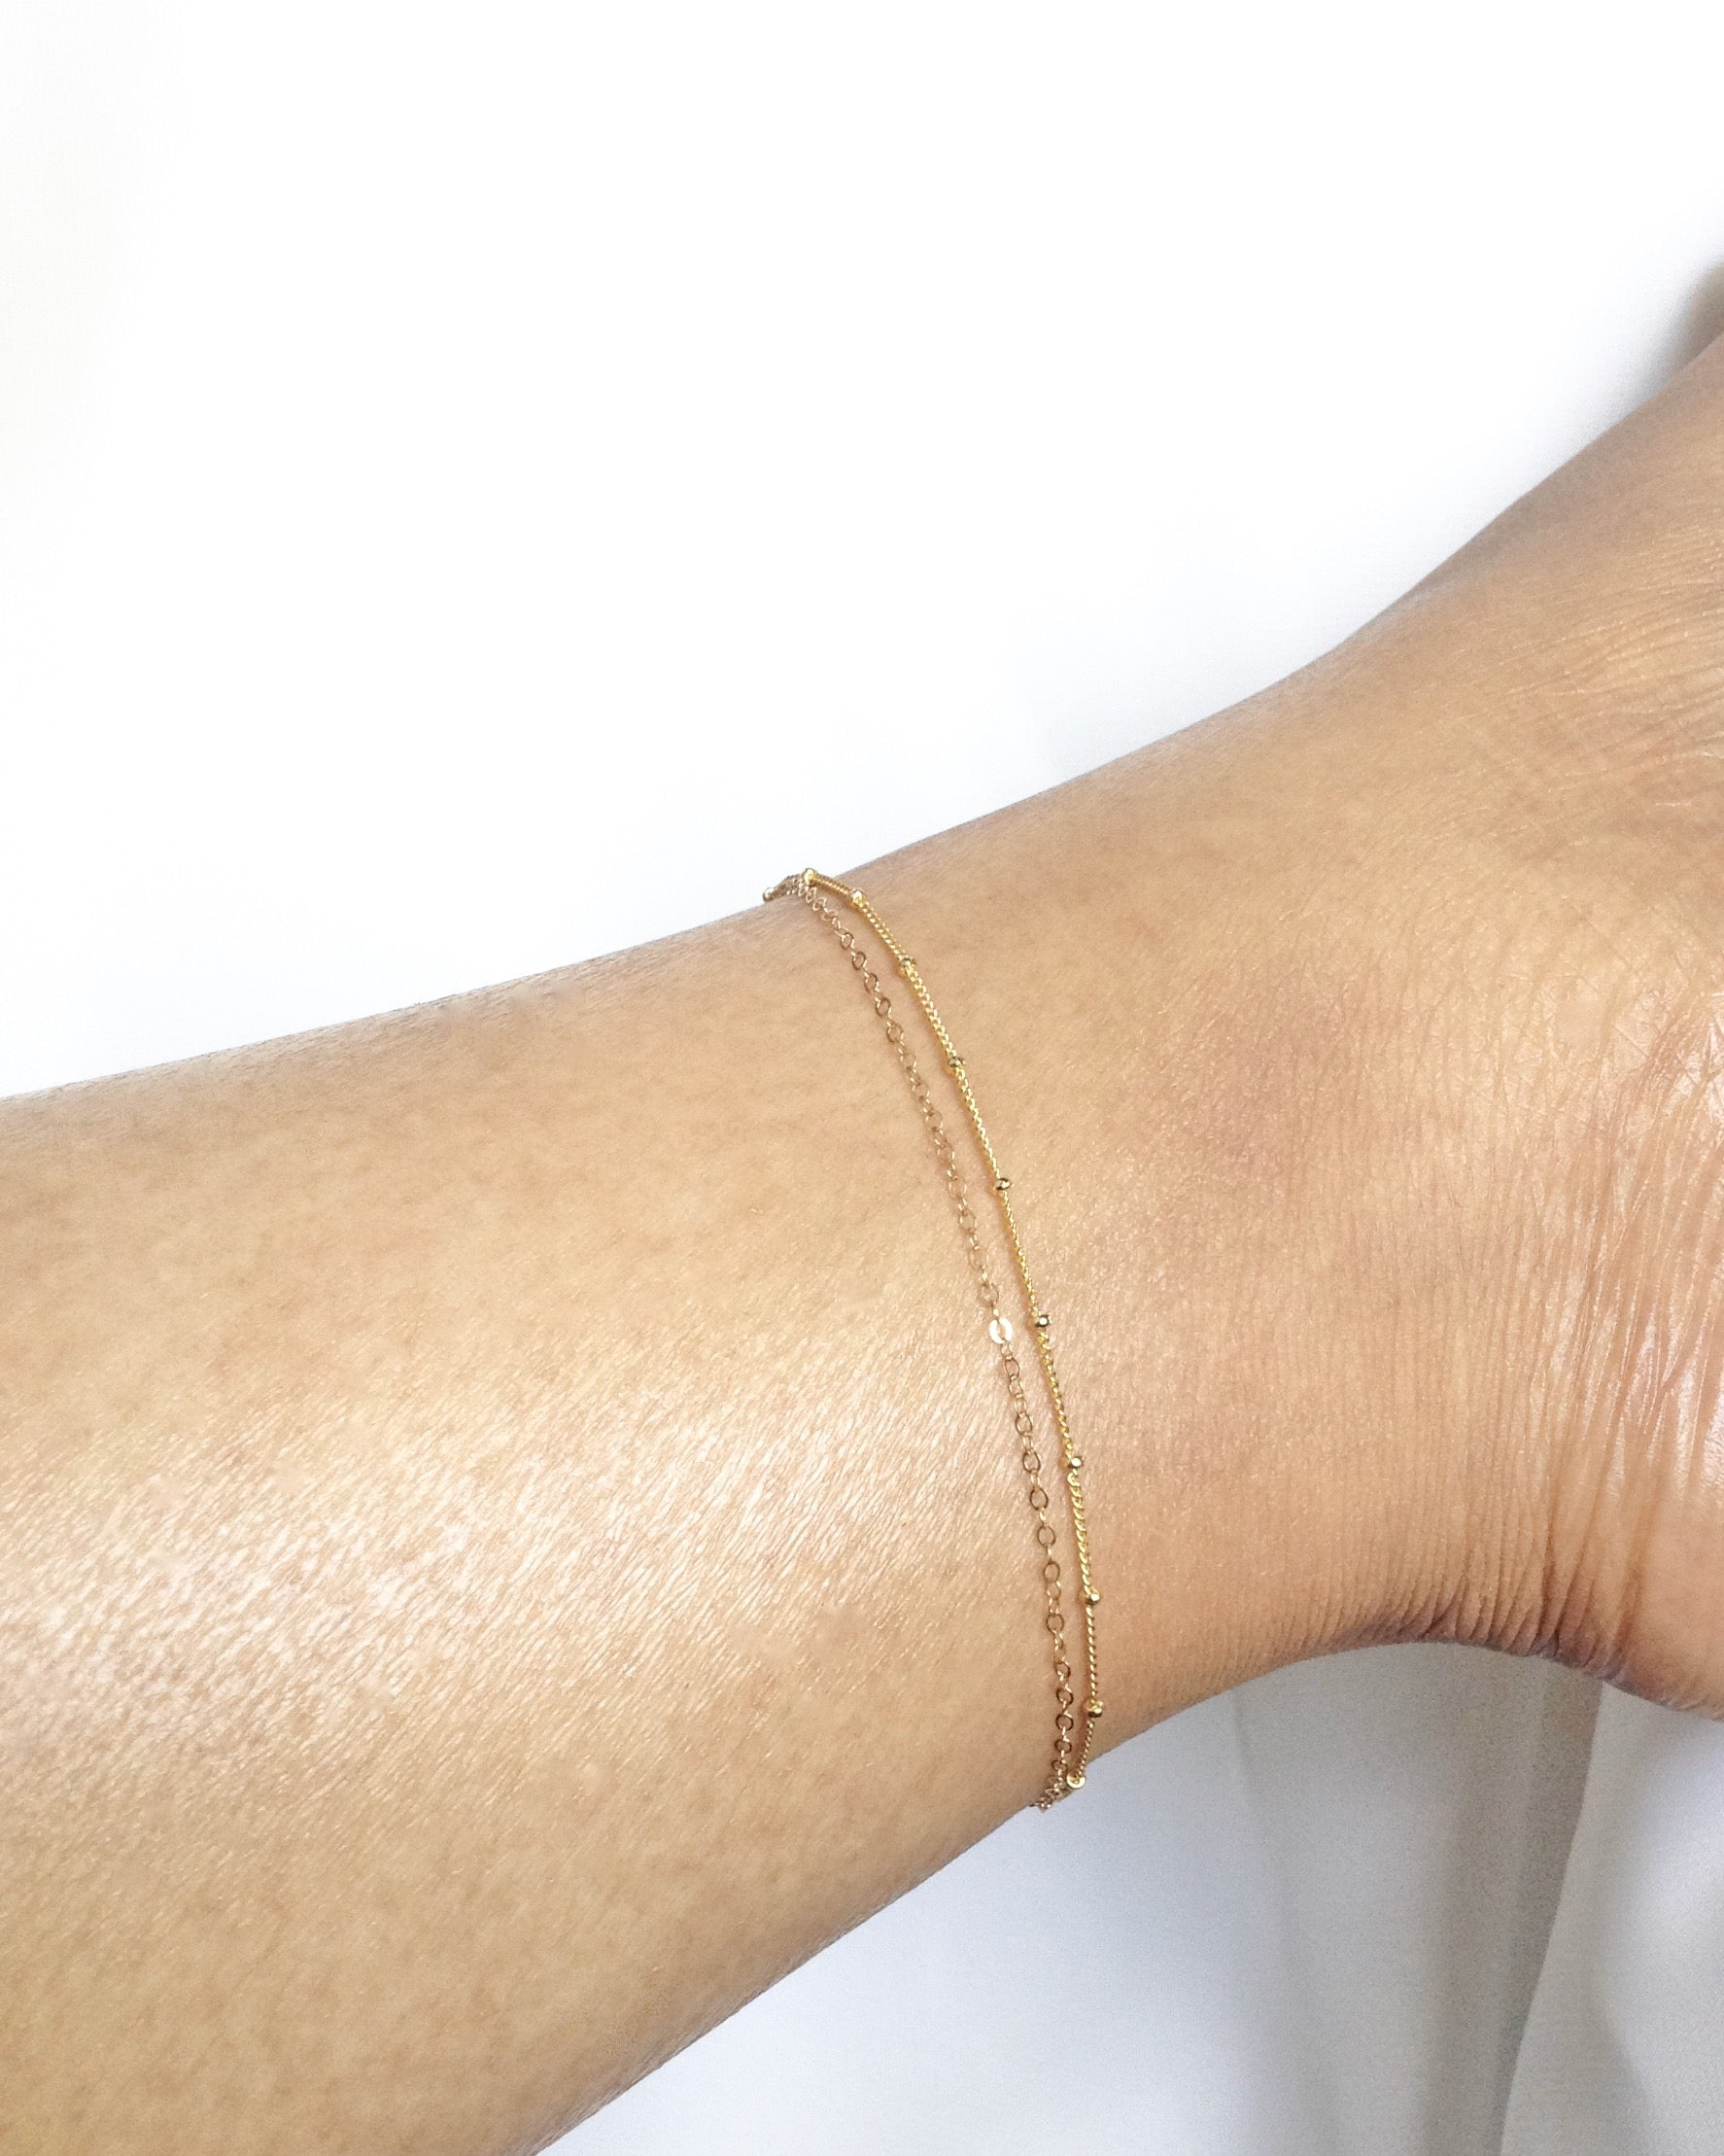 Simple Double Layer Anklet | Dainty Gold Anklet | Delicat Gold Anklet | IB Jewelry